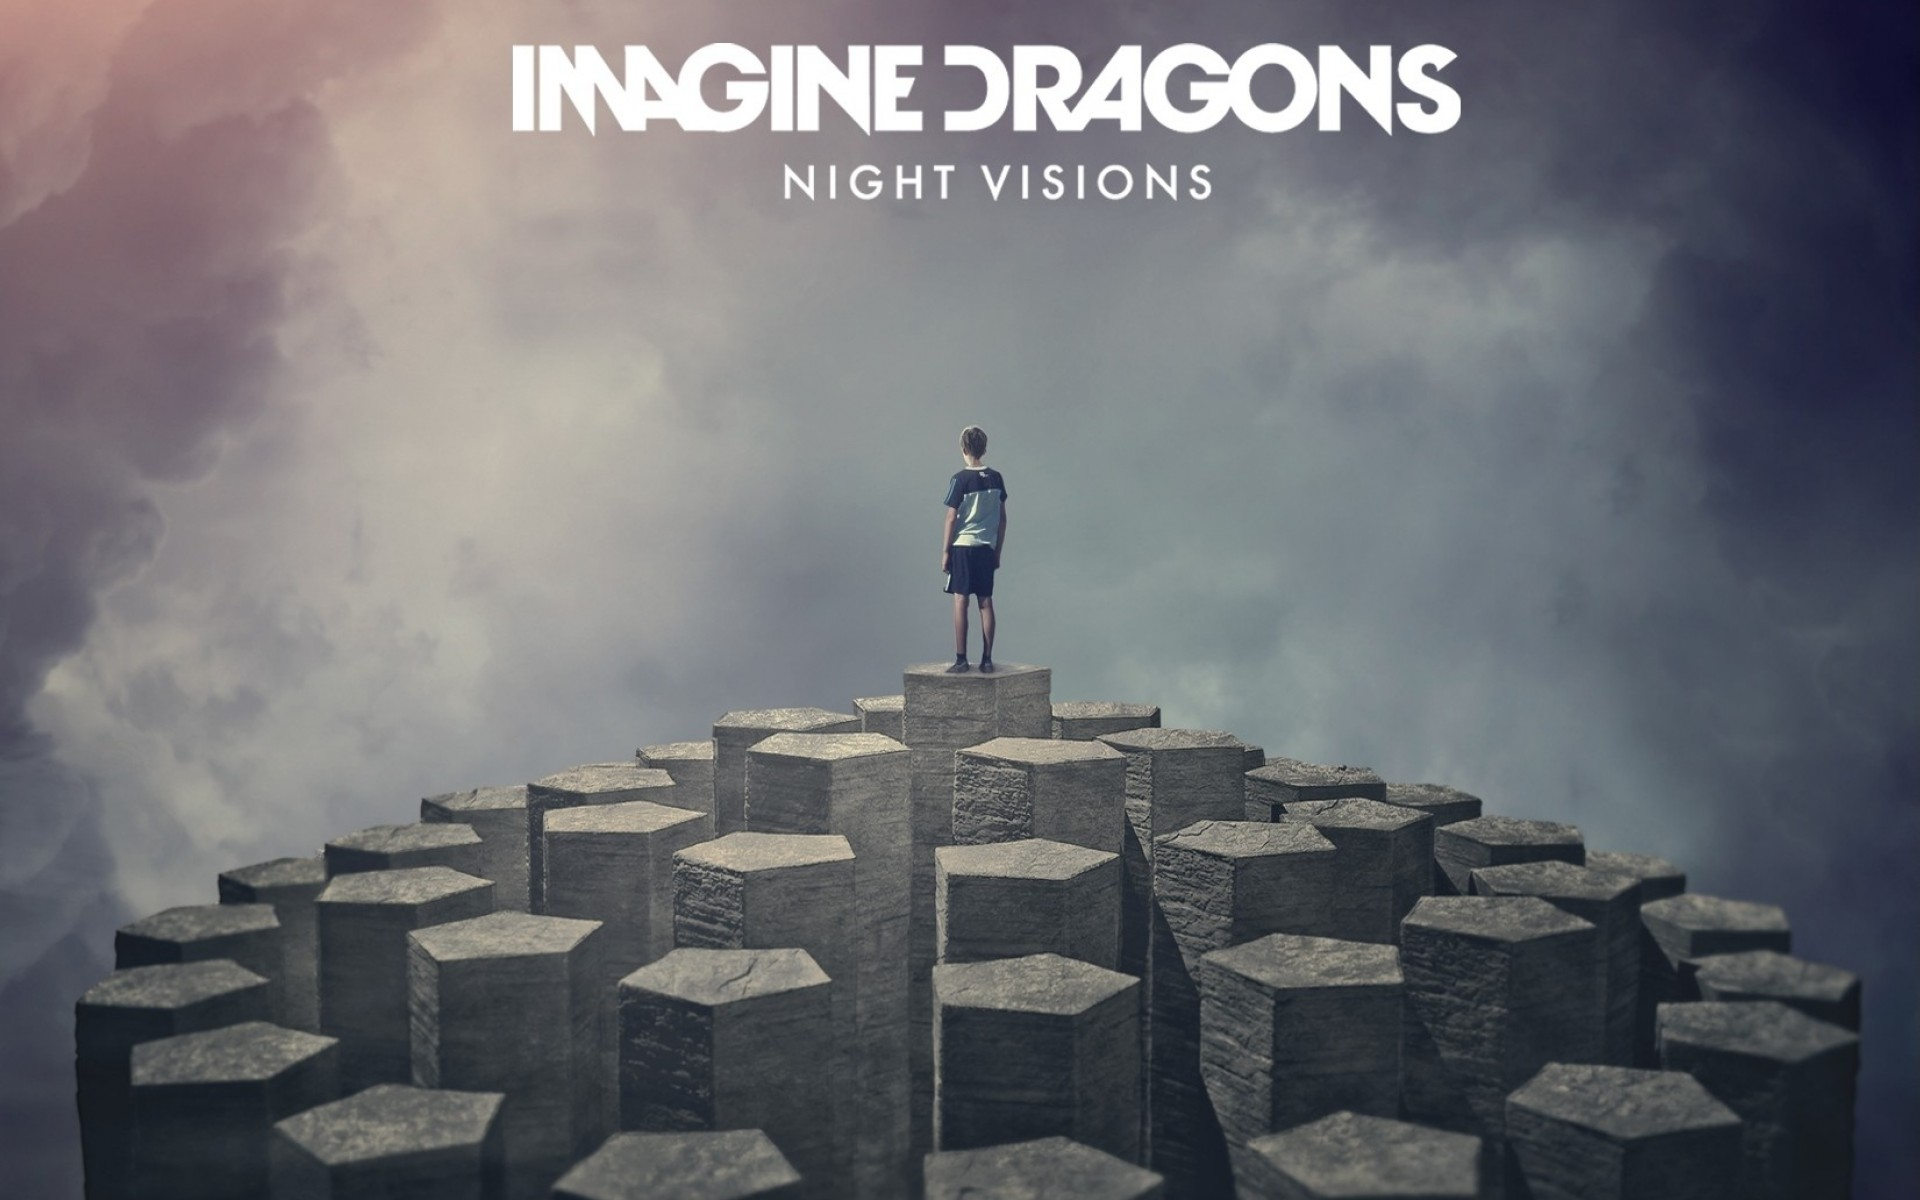 36 imagine dragons hd wallpapers backgrounds wallpaper